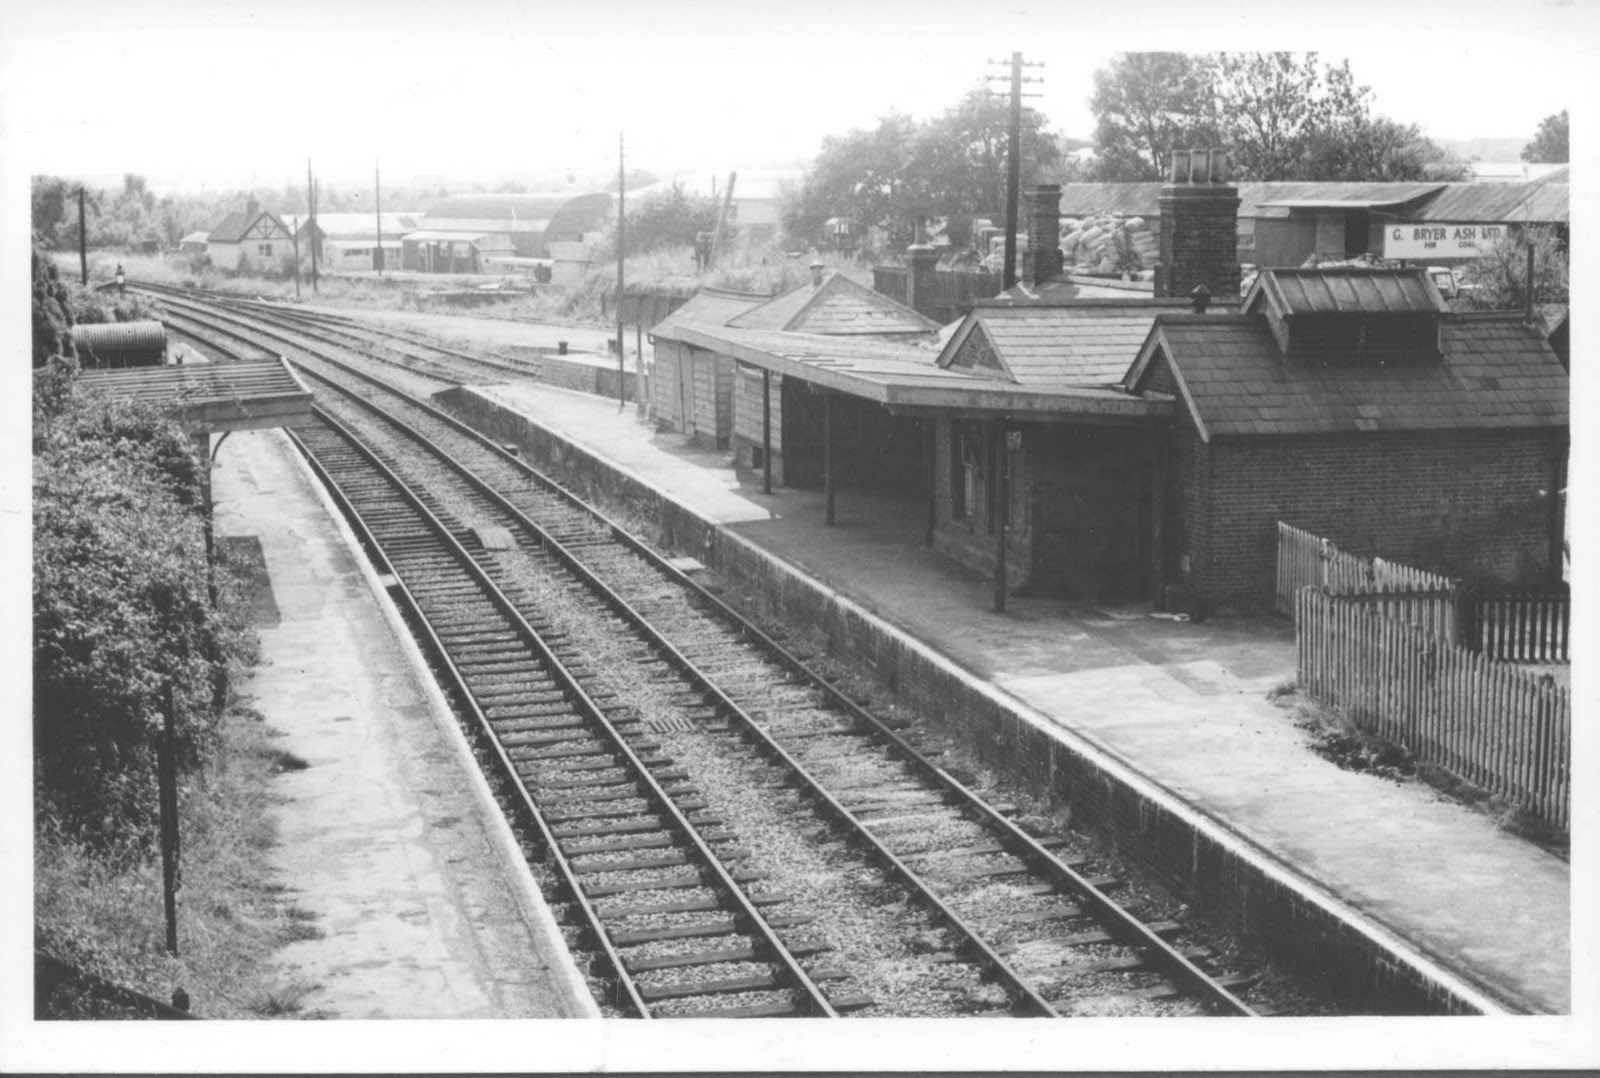 The Salisbury And Dorset Junction Railway Verwood